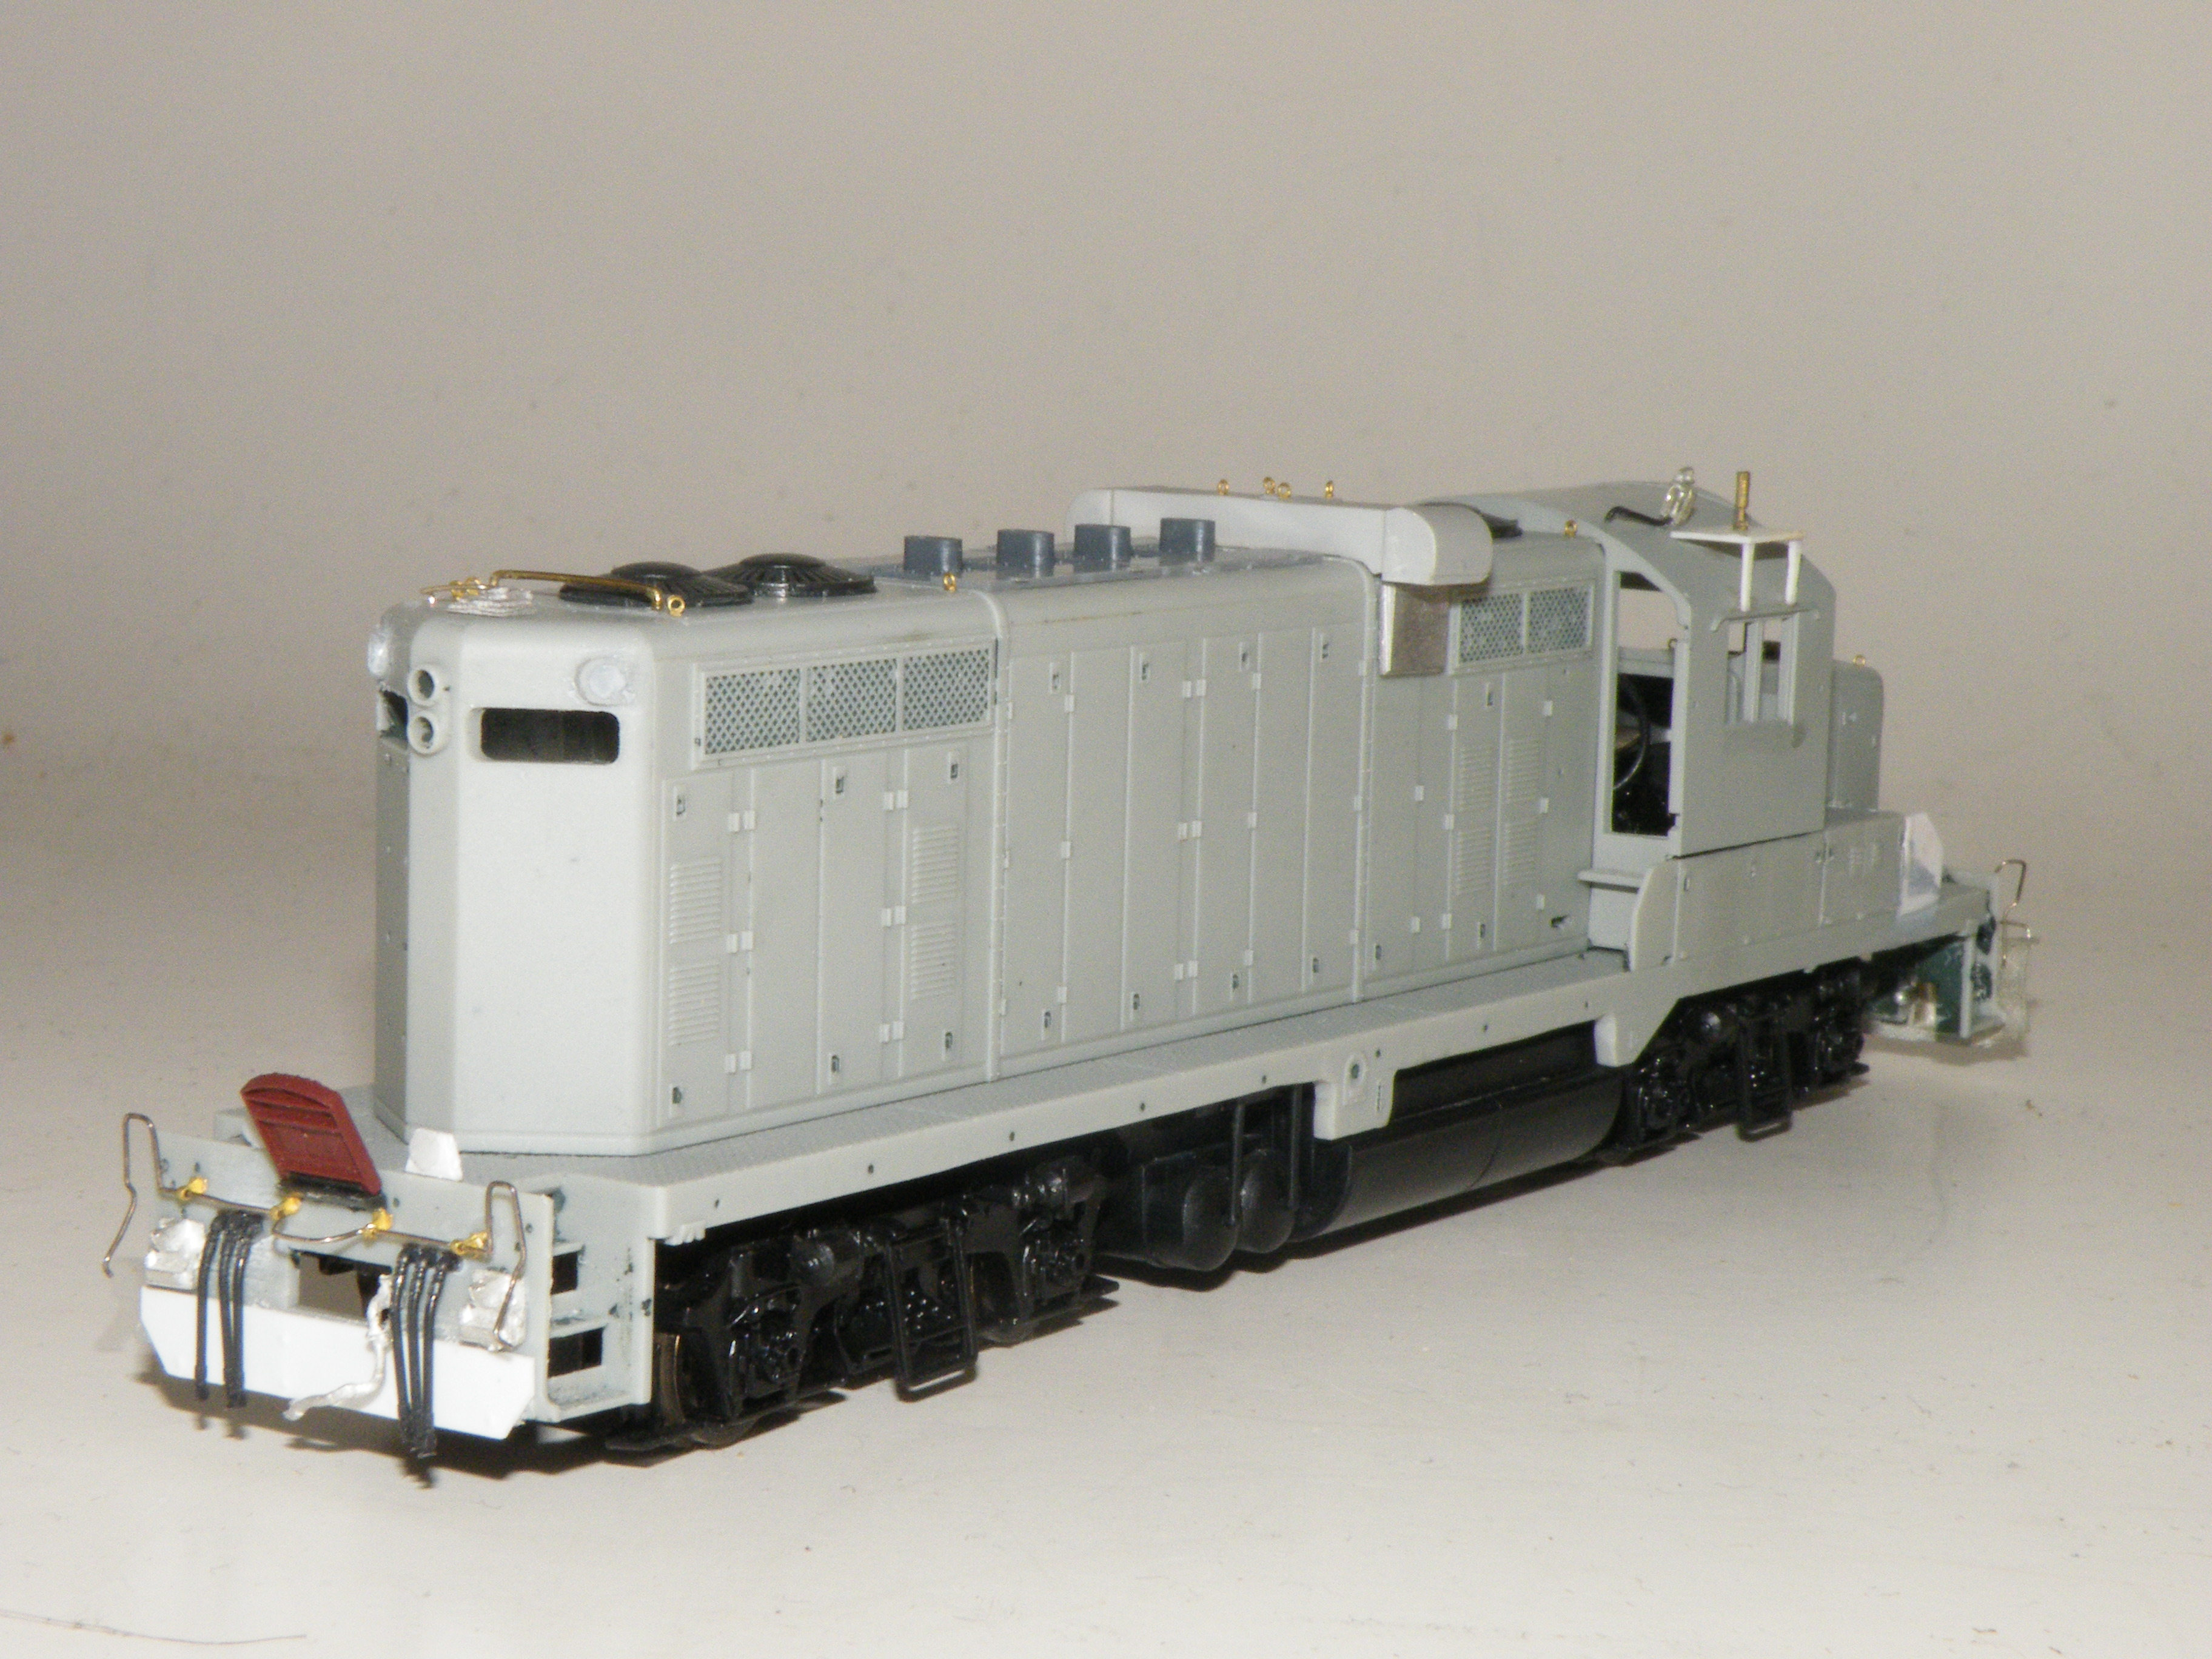 The rear view of 400 showing new styrene pilot and filled in class lights. I replaced the P2K exhaust stacks with four detail associate stacks. The only thing missing at this time were the doors, but I am now detail painting and decaling the nearly completed unit.